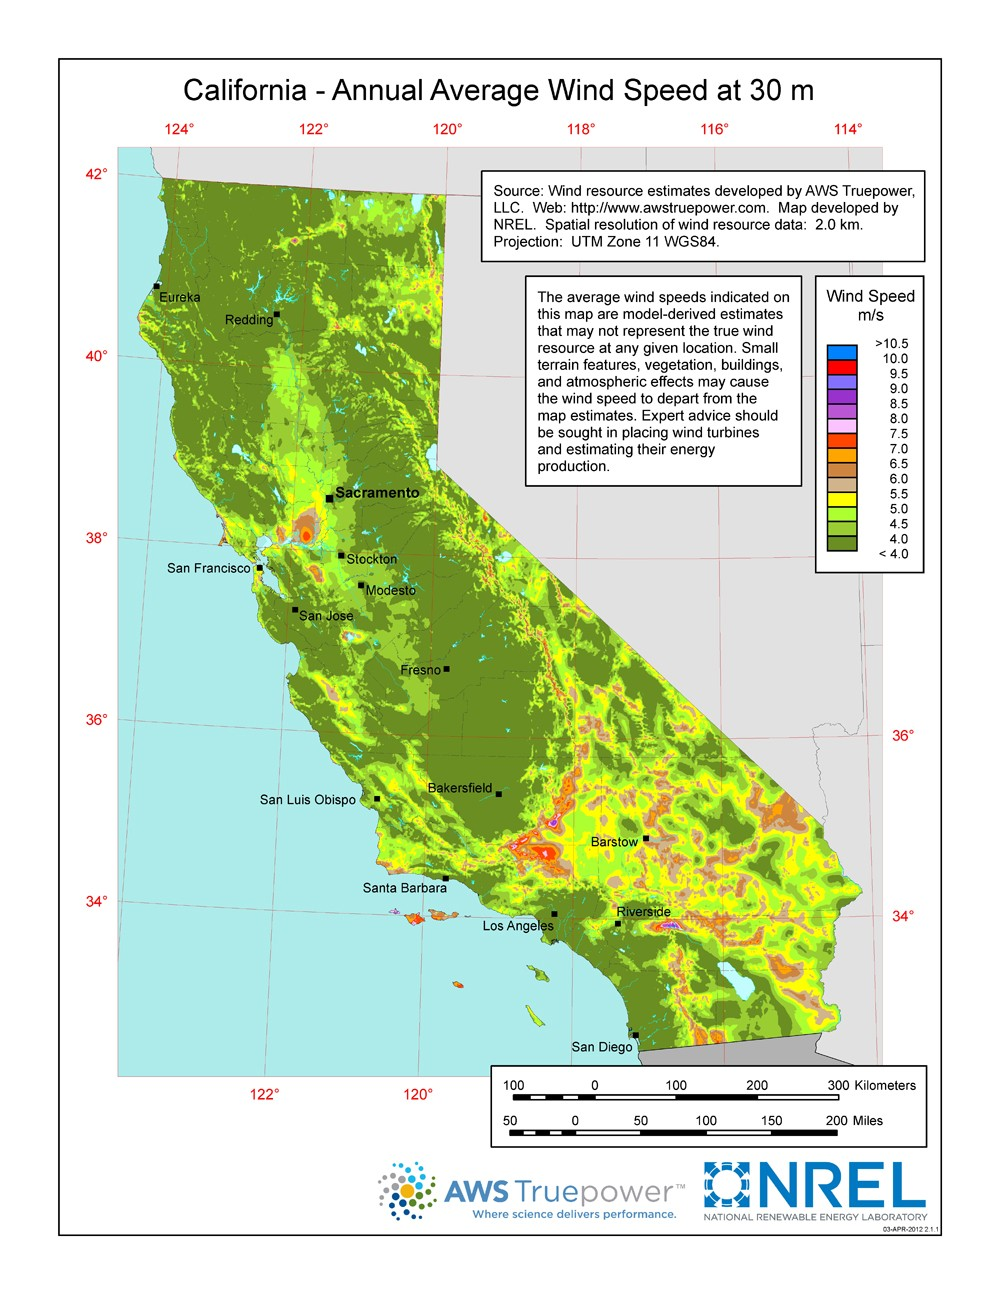 a map of california showing wind sds at a 30 m height